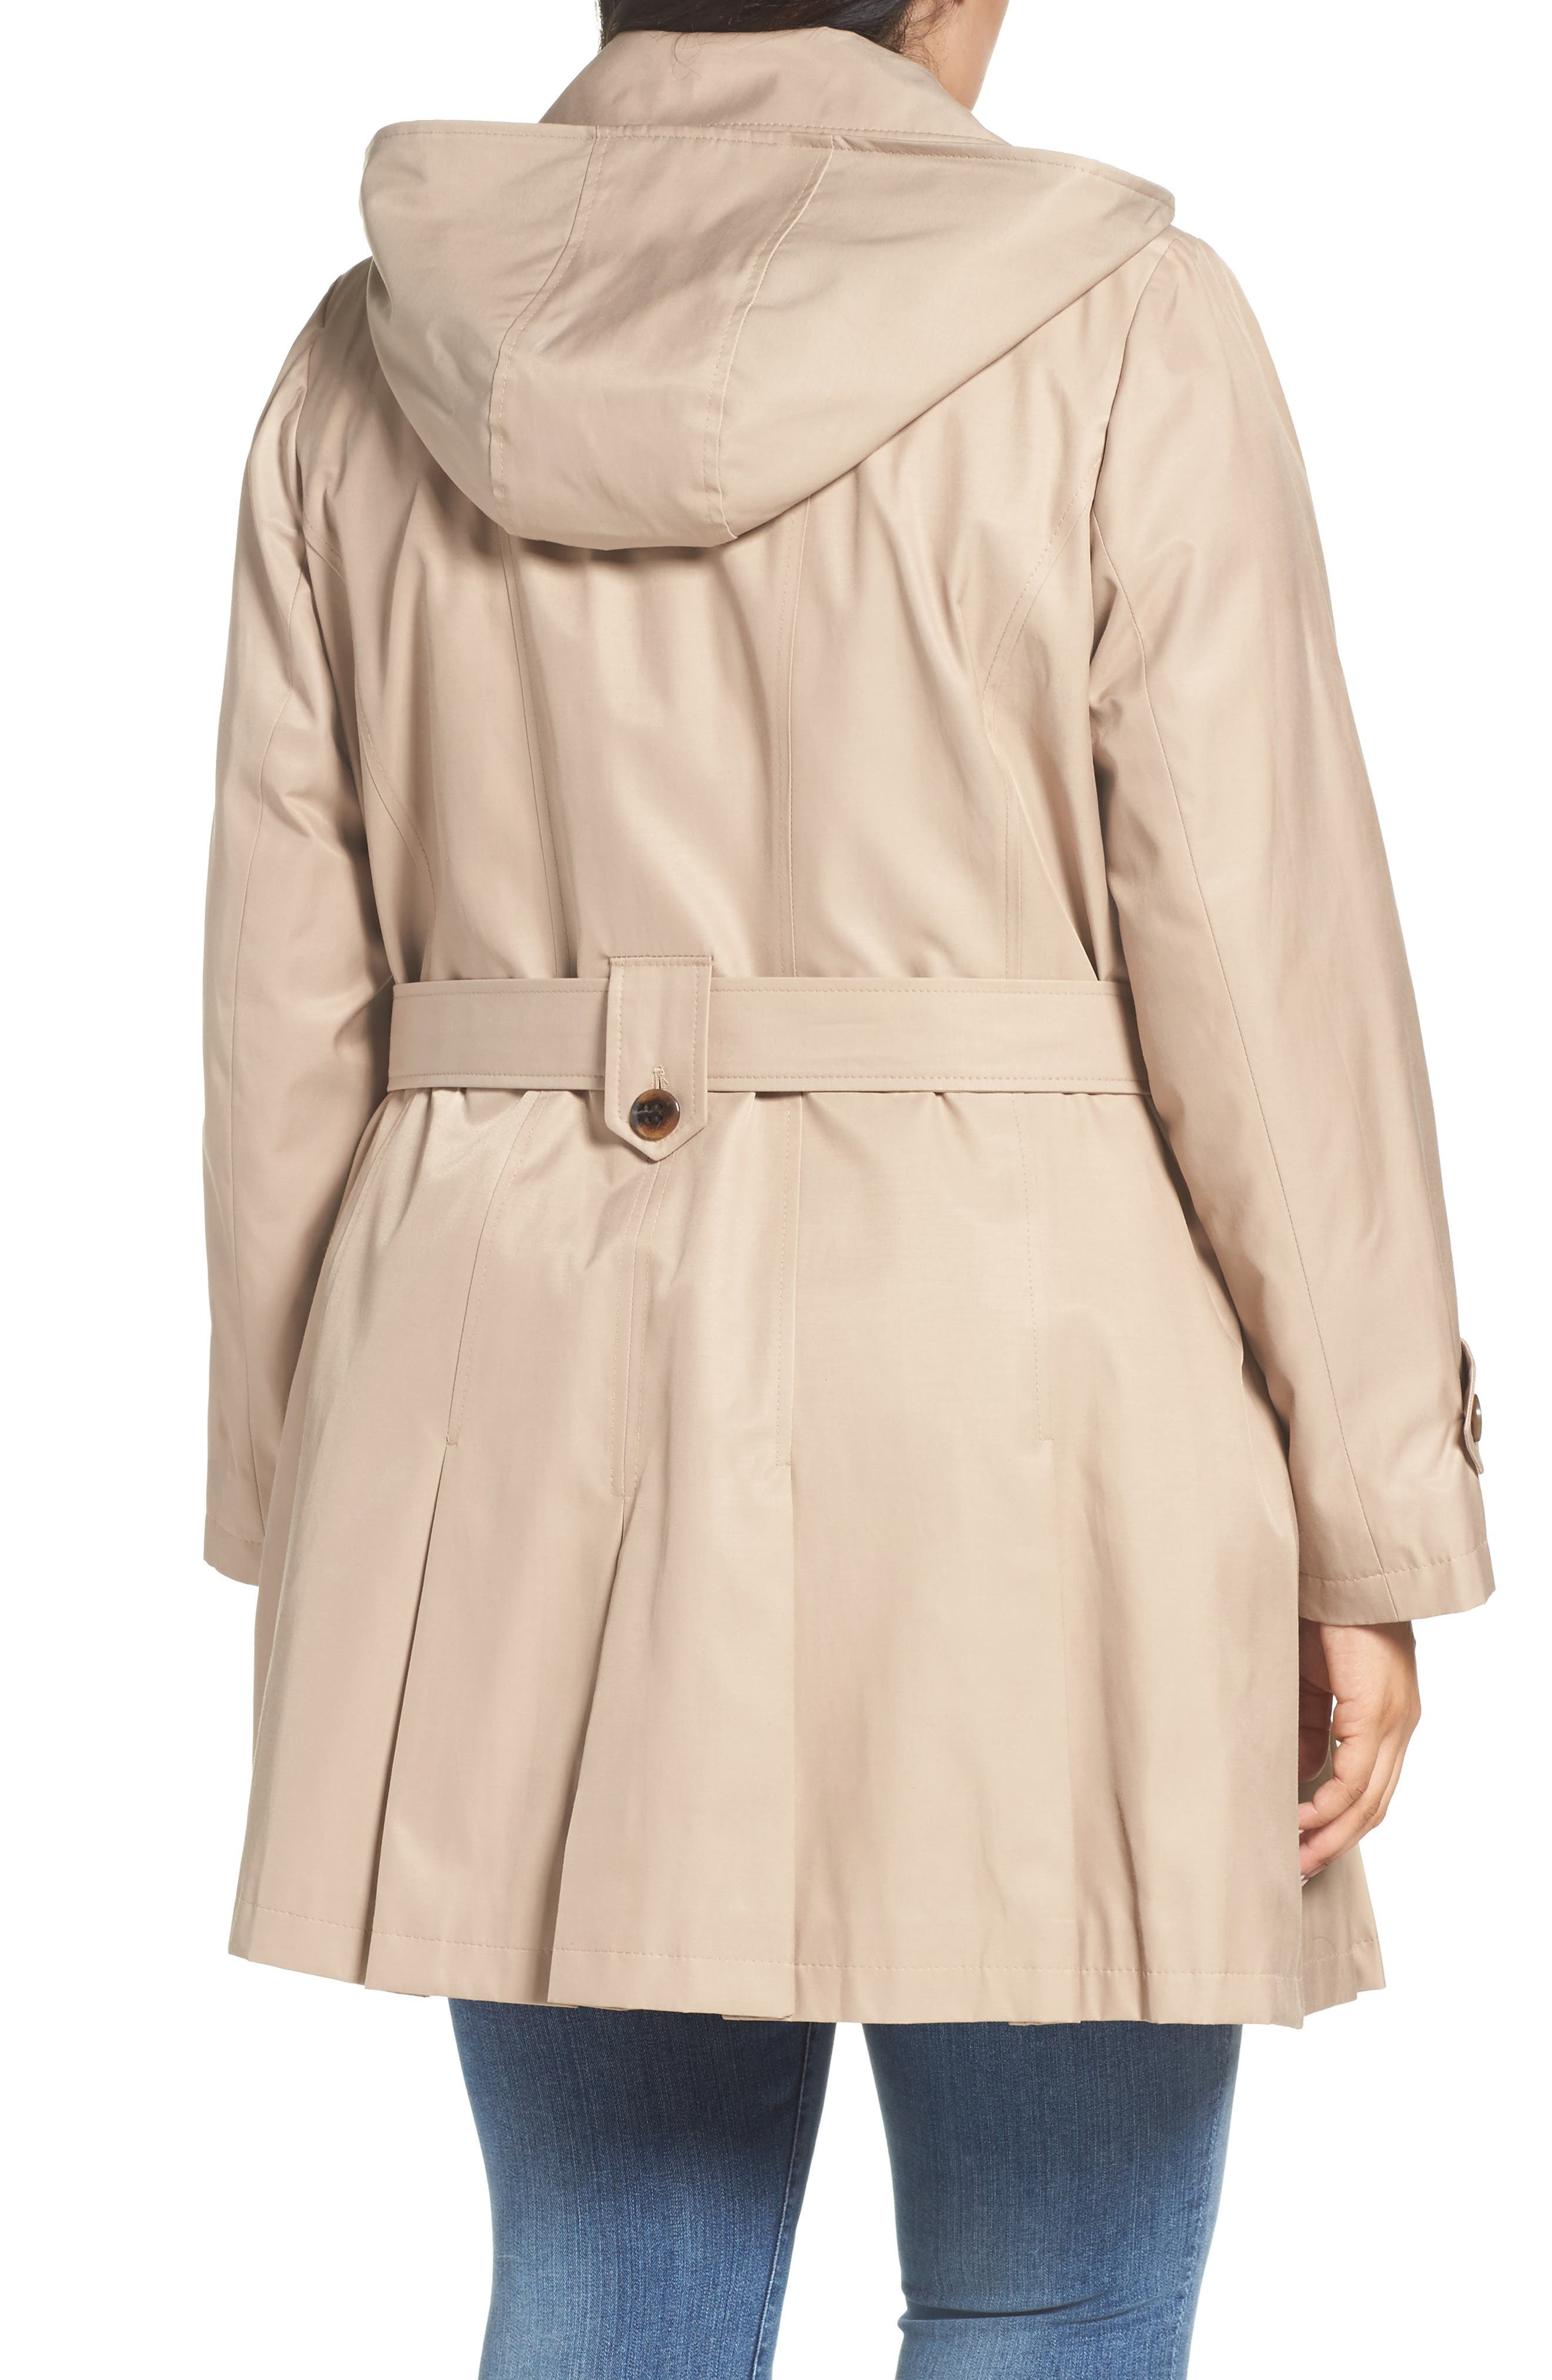 'Scarpa' Single Breasted Trench Coat,                             Alternate thumbnail 9, color,